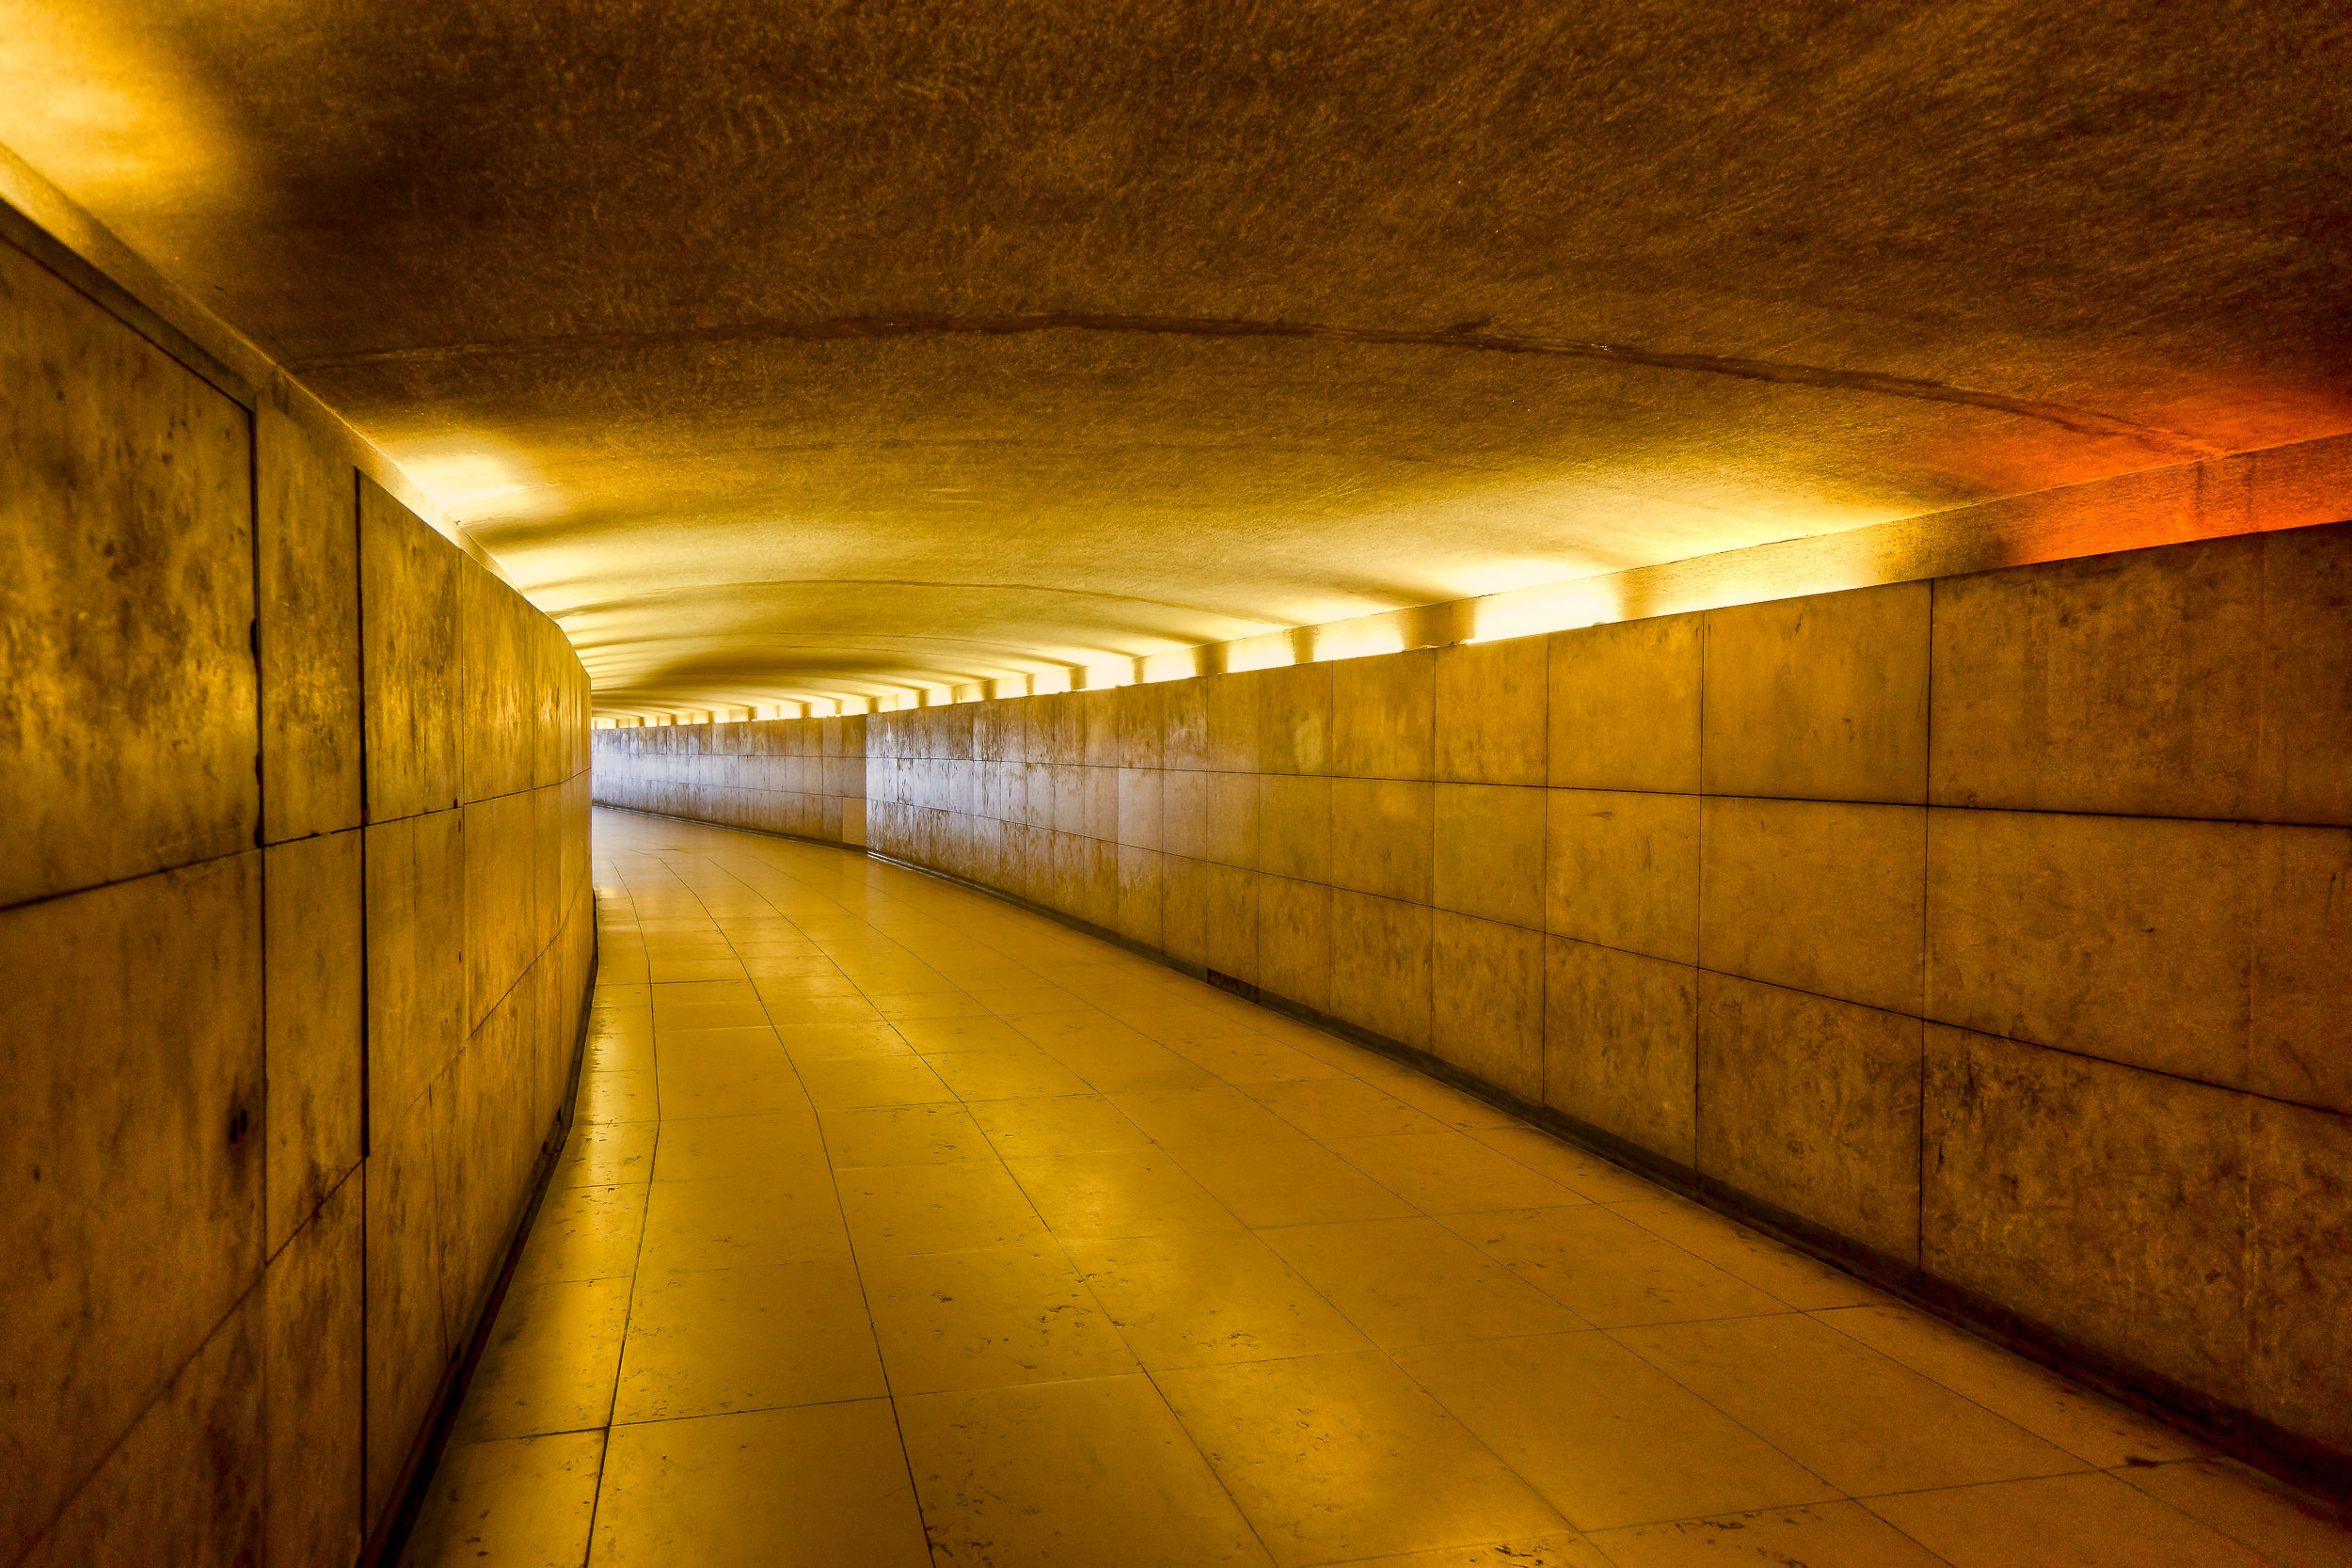 Warm, artificial light  illuminates a  subway  in  Paris, France